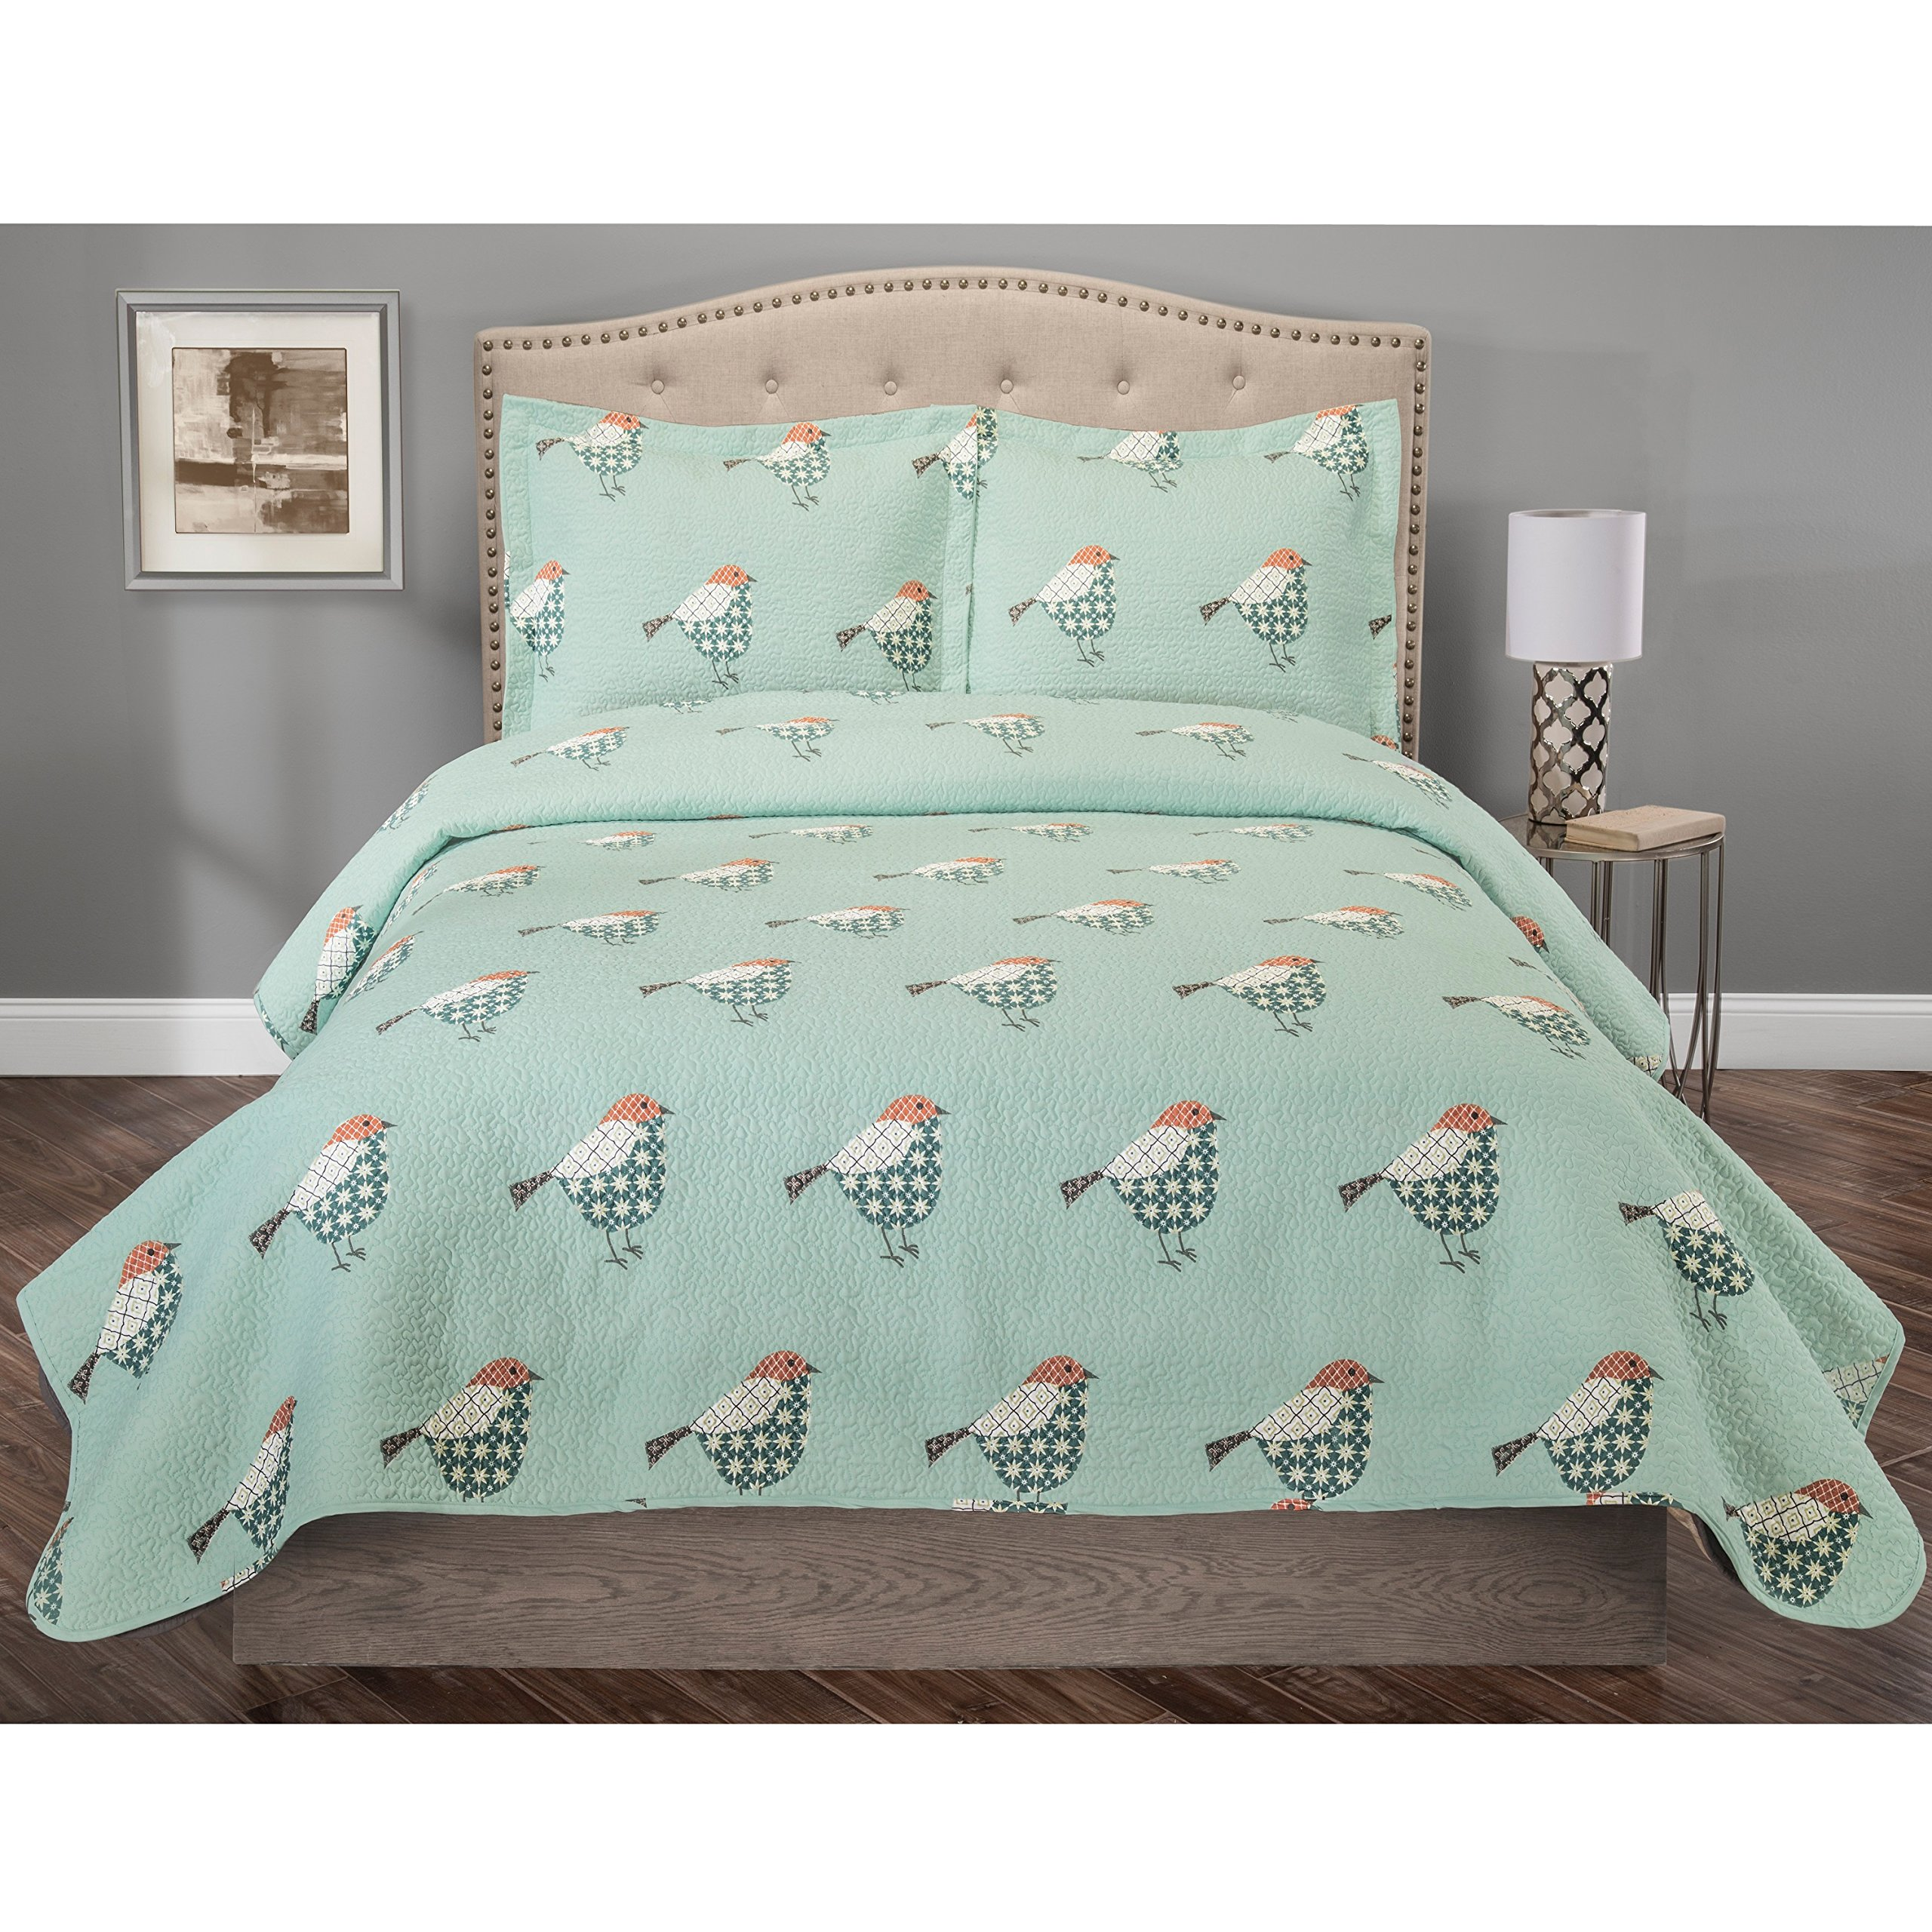 2 Piece Whimsical Sparrow Patterned Quilt Set Twin Size, All Over Printed Chic Vivid Birds Bedding, Refreshing Animal Lovers Design, Inspired American Flag Colors Sparrows Bedroom, Turquoise, Red